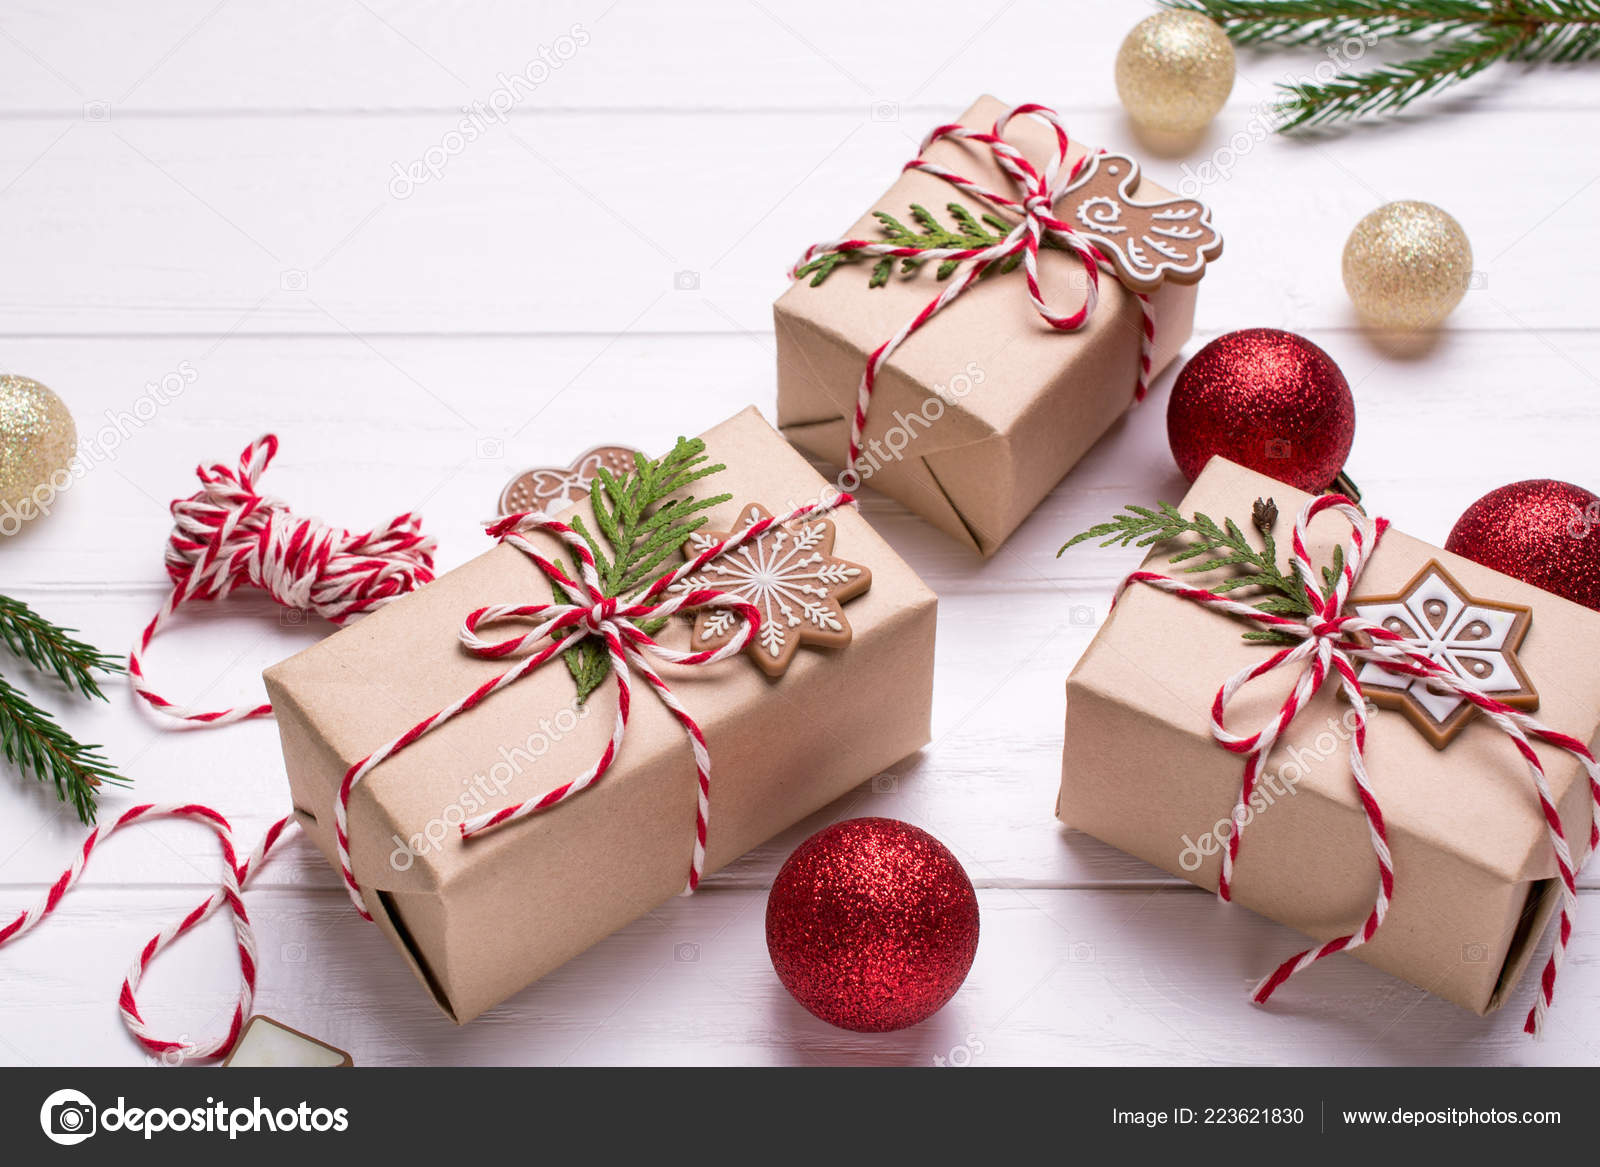 Packing Christmas ts Christmas t boxes and decorations pine branches on white table Present decorated with natural parts with copy space